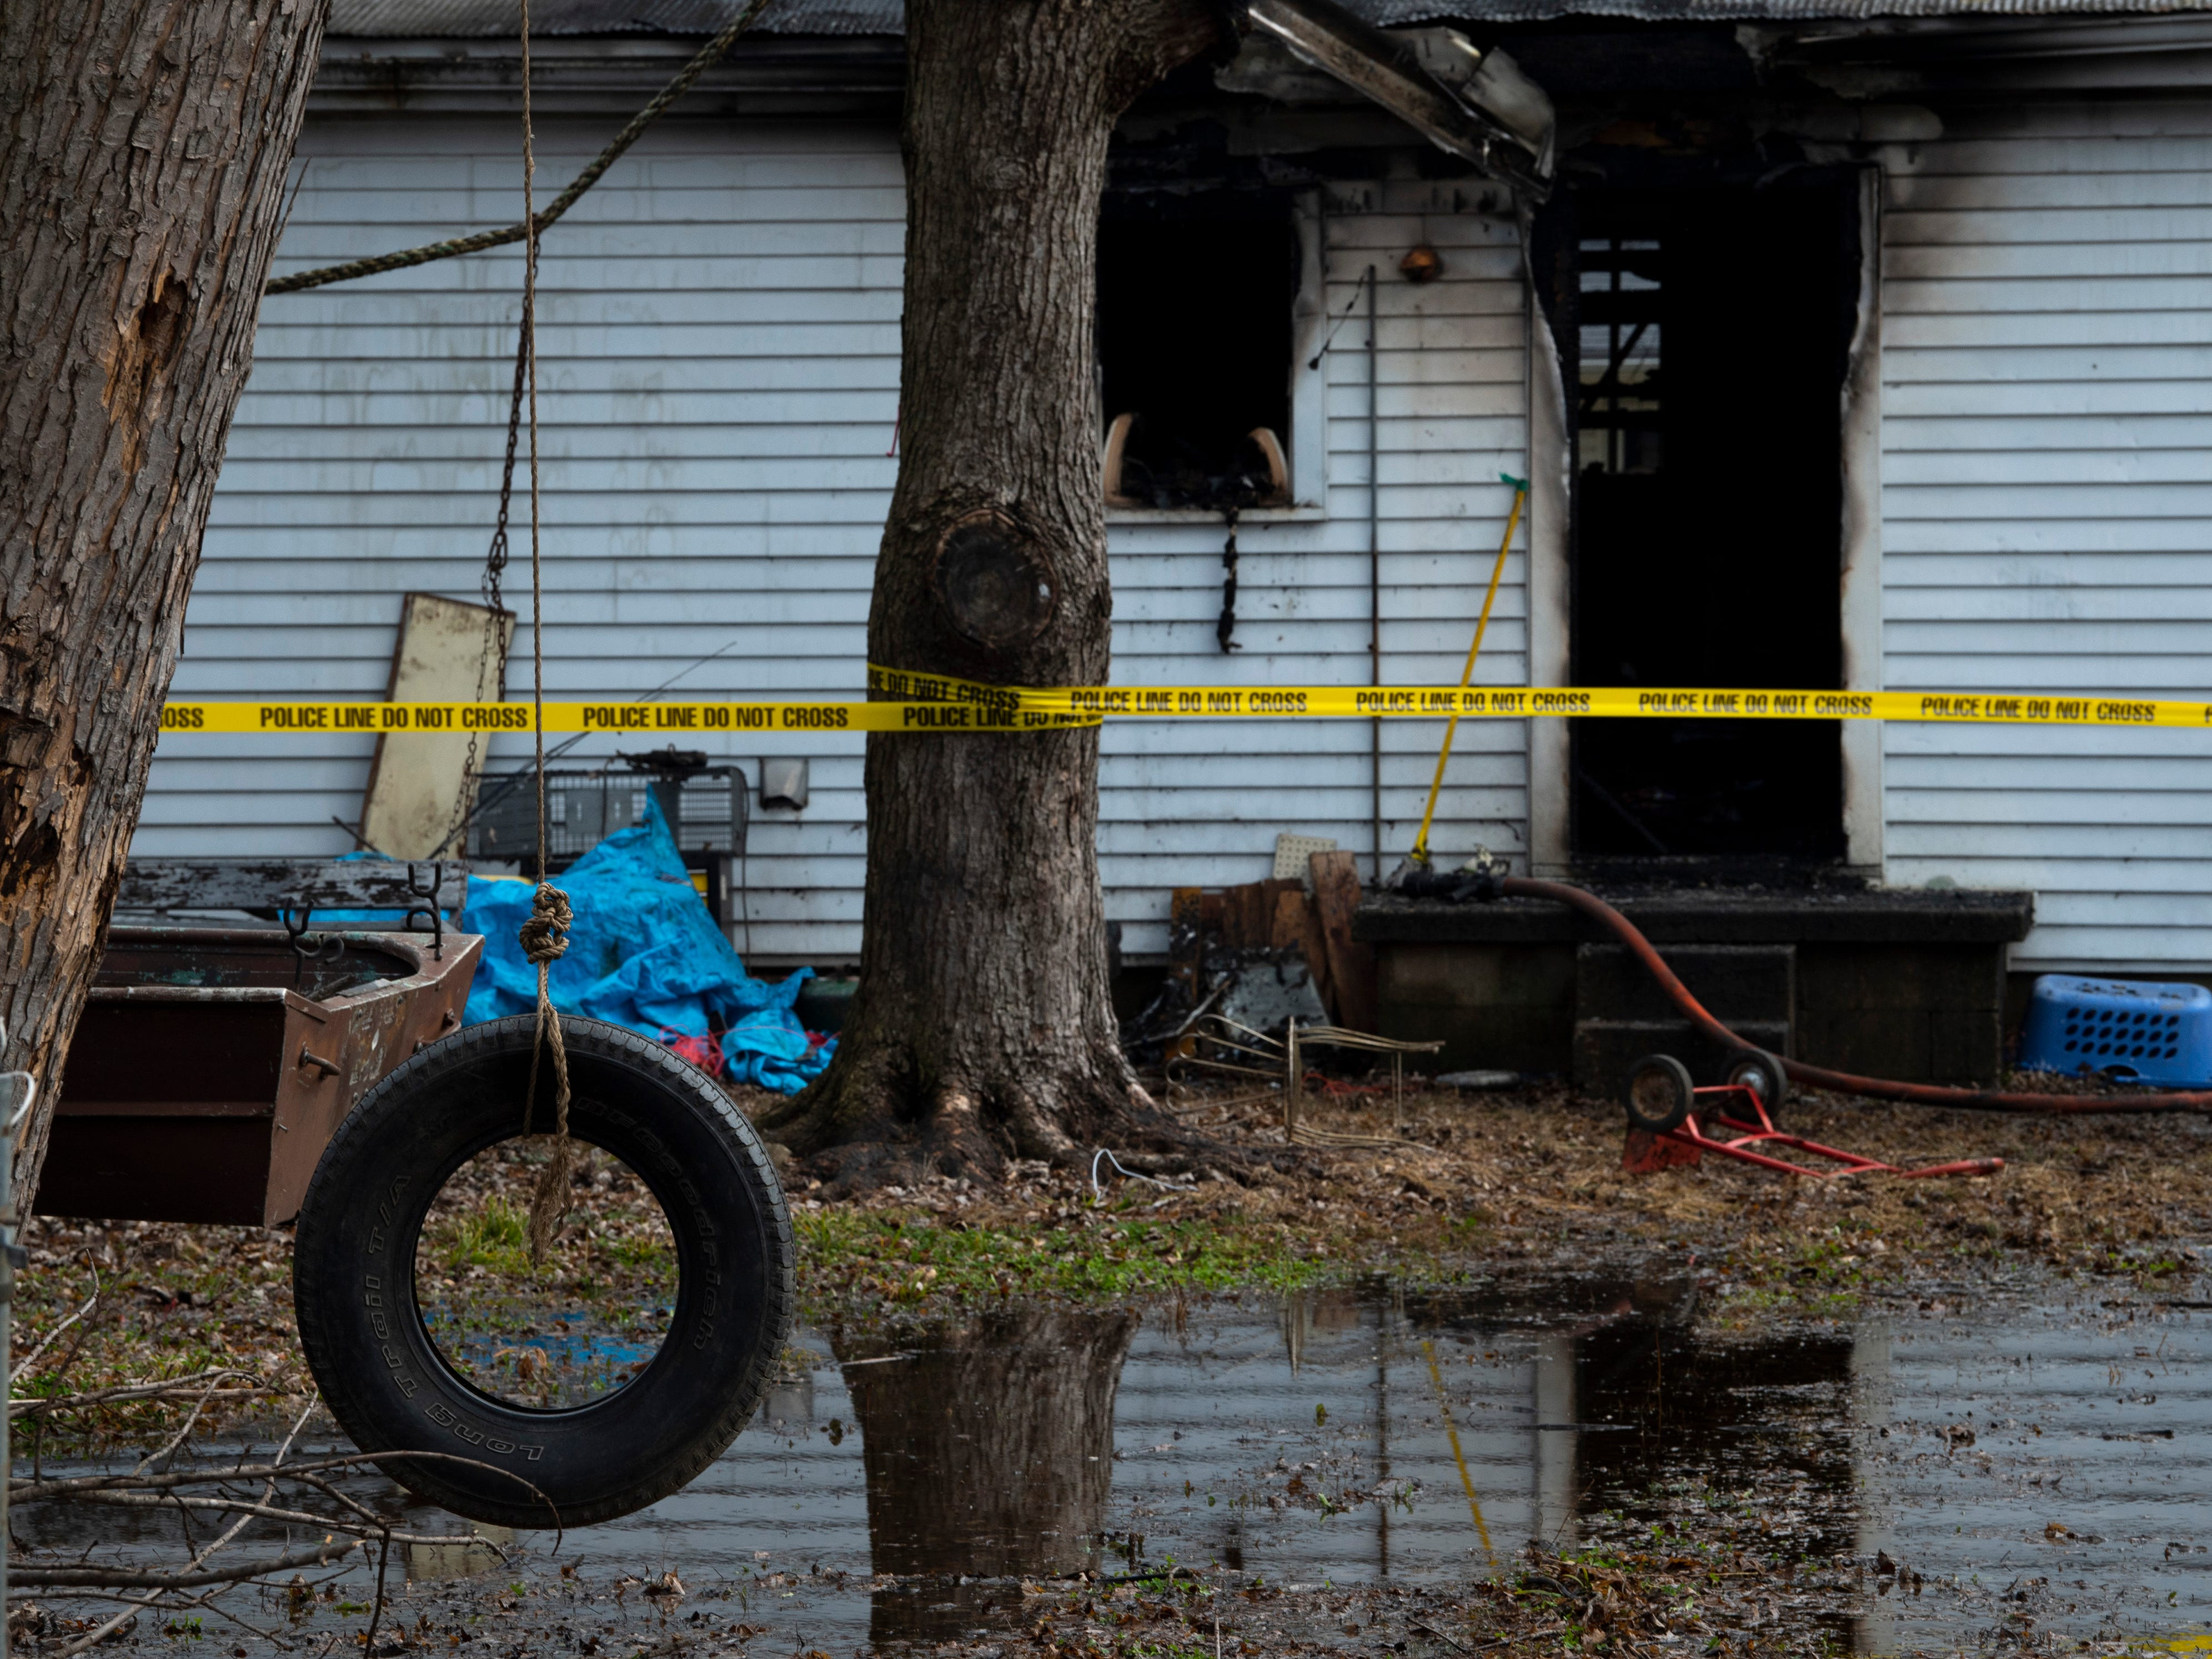 Water pools in the backyard of a home at 1027 15th Street in Tell City, Ind., Friday morning. An early morning fire took the lives of three children in the home. Their mother and two other siblings escaped the blaze with non life-threatening injuries.